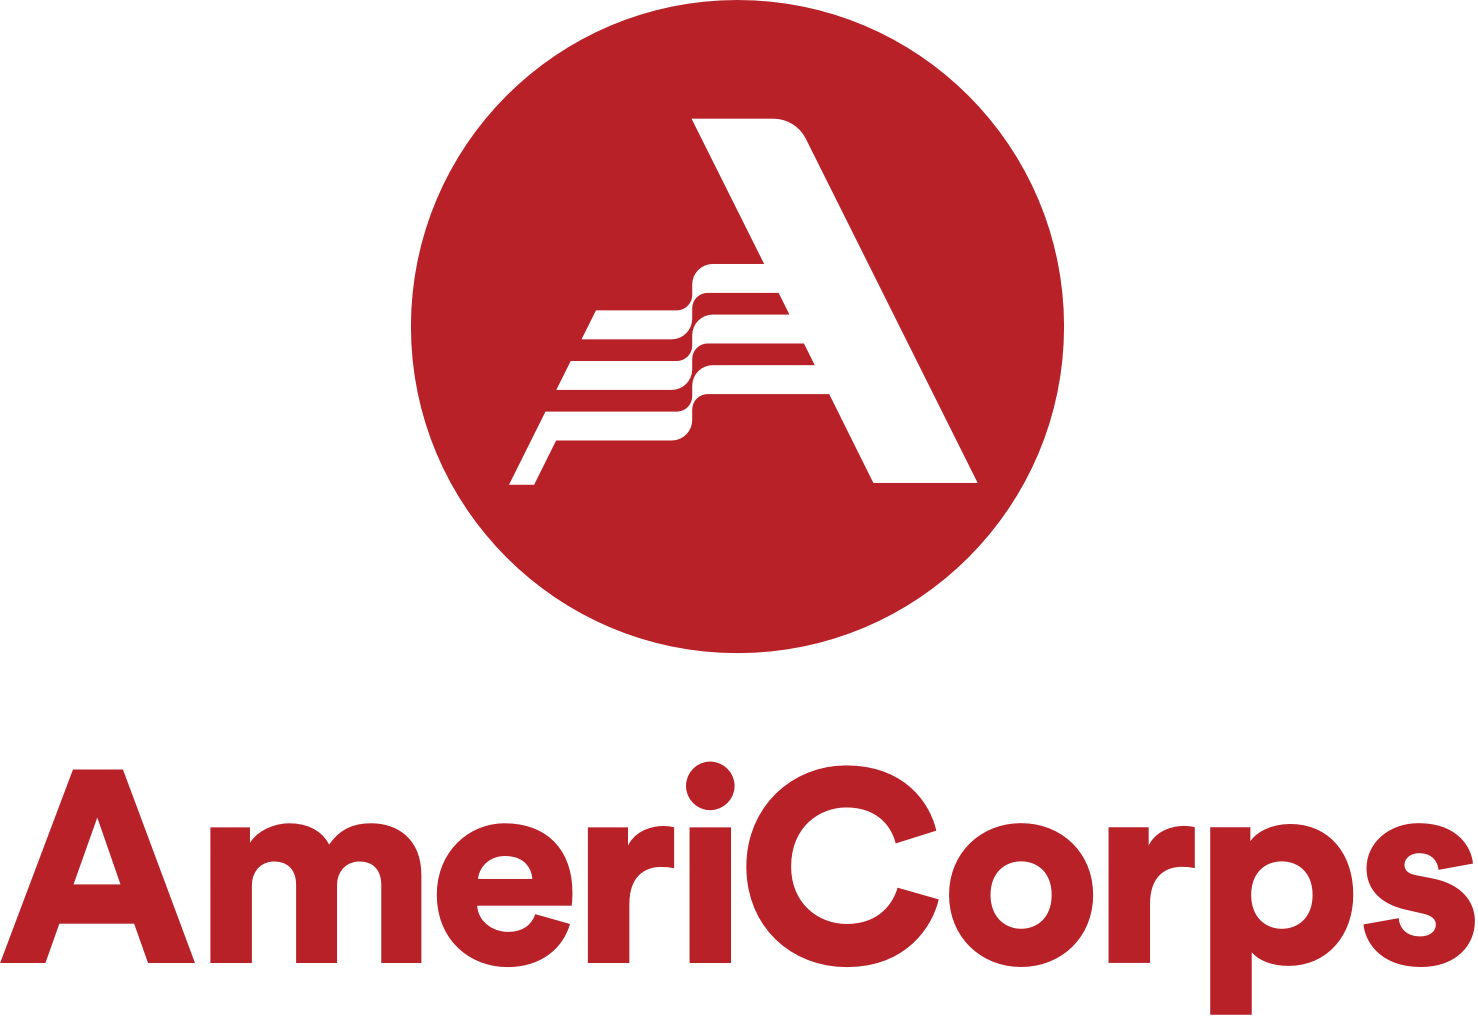 AmeriCorps Logo in red